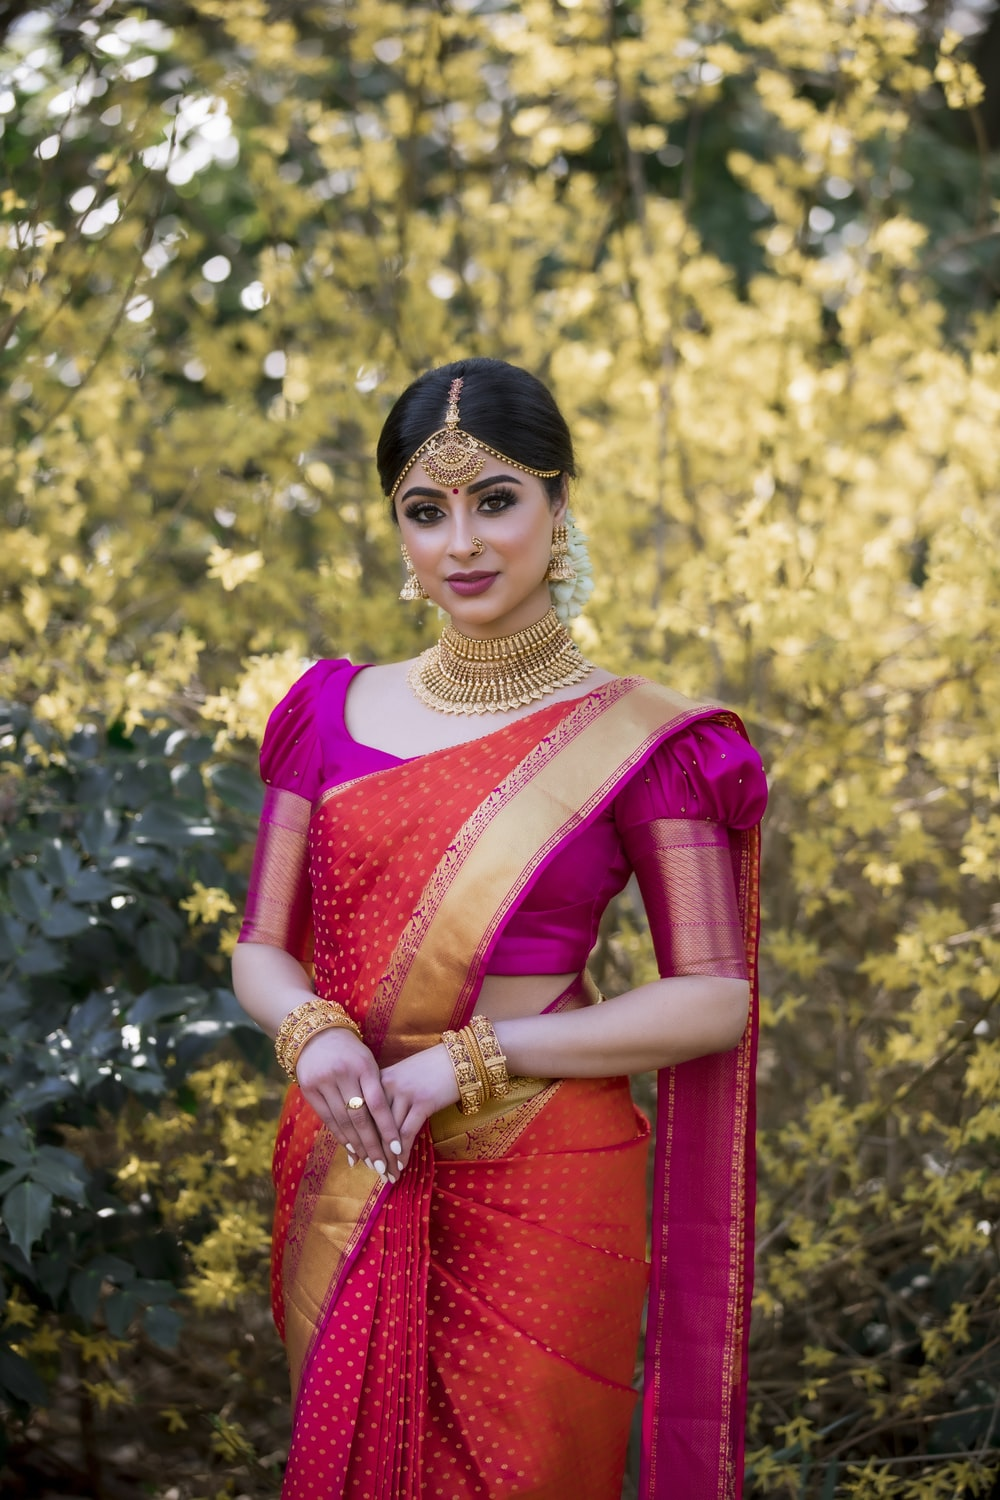 woman in red and white sari standing near green trees during daytime